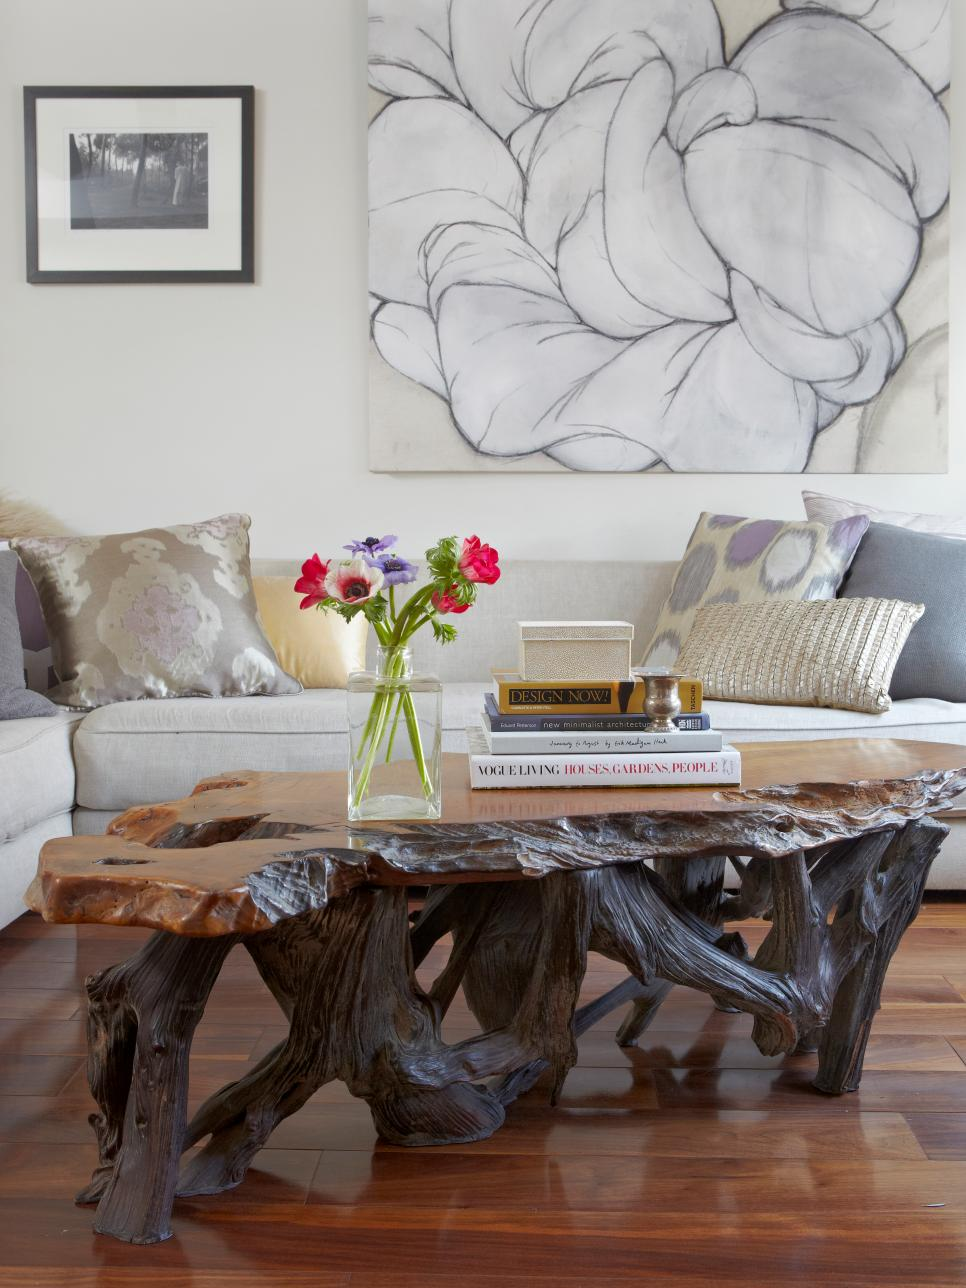 Detail Photo of Natural Wood Coffee Table and Sectional